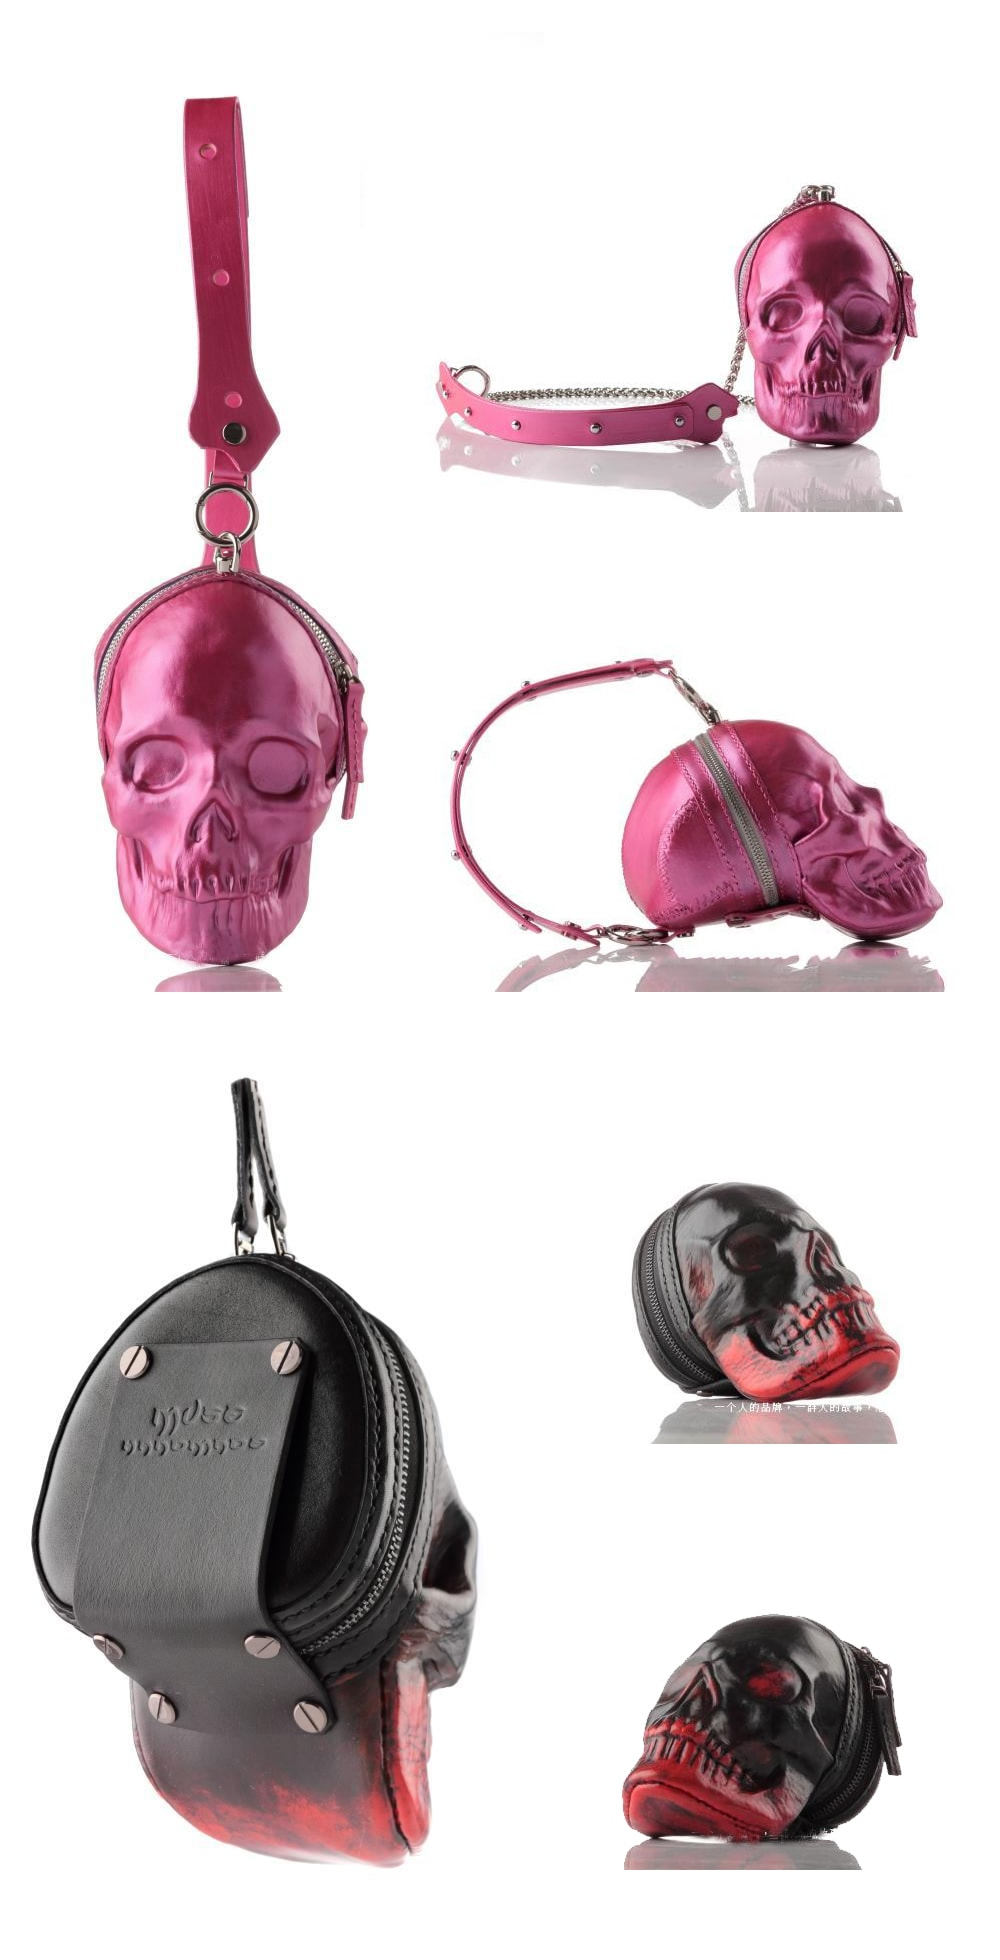 Skull Leather Purse You are Special With This Masterpiece